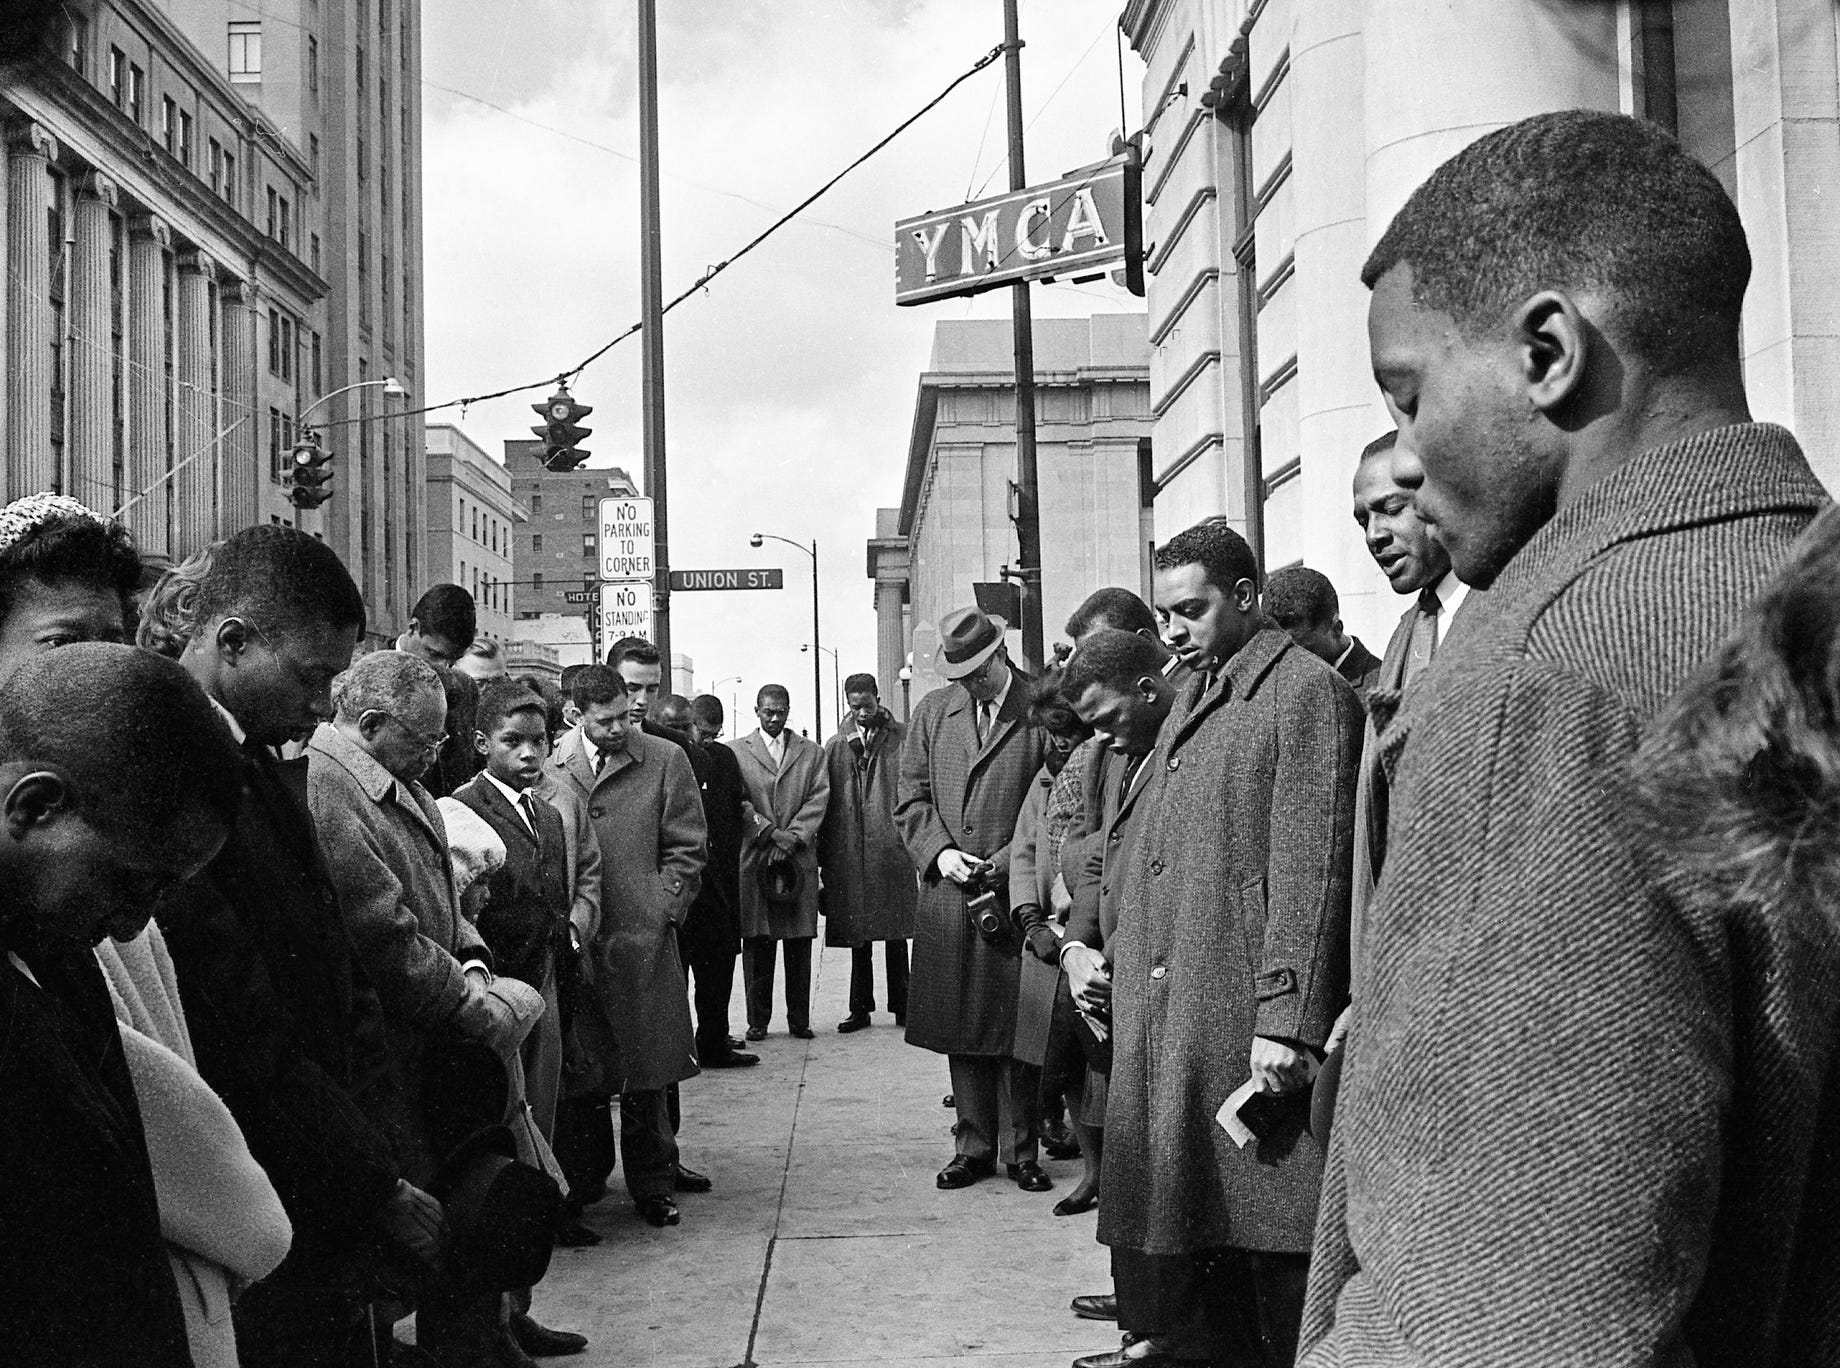 A group of men, women and children gather in front of the downtown YMCA on Feb. 24, 1963, to protest segregation. This group is part of a crowd of about 60 who participated in the demonstration, led by the Nashville Christian Leadership Council. A couple of the student leaders are John Lewis, center on the right side, and Lester McKinnie, right. The group sang hymns and heard prayers from several of the demonstration's leaders.